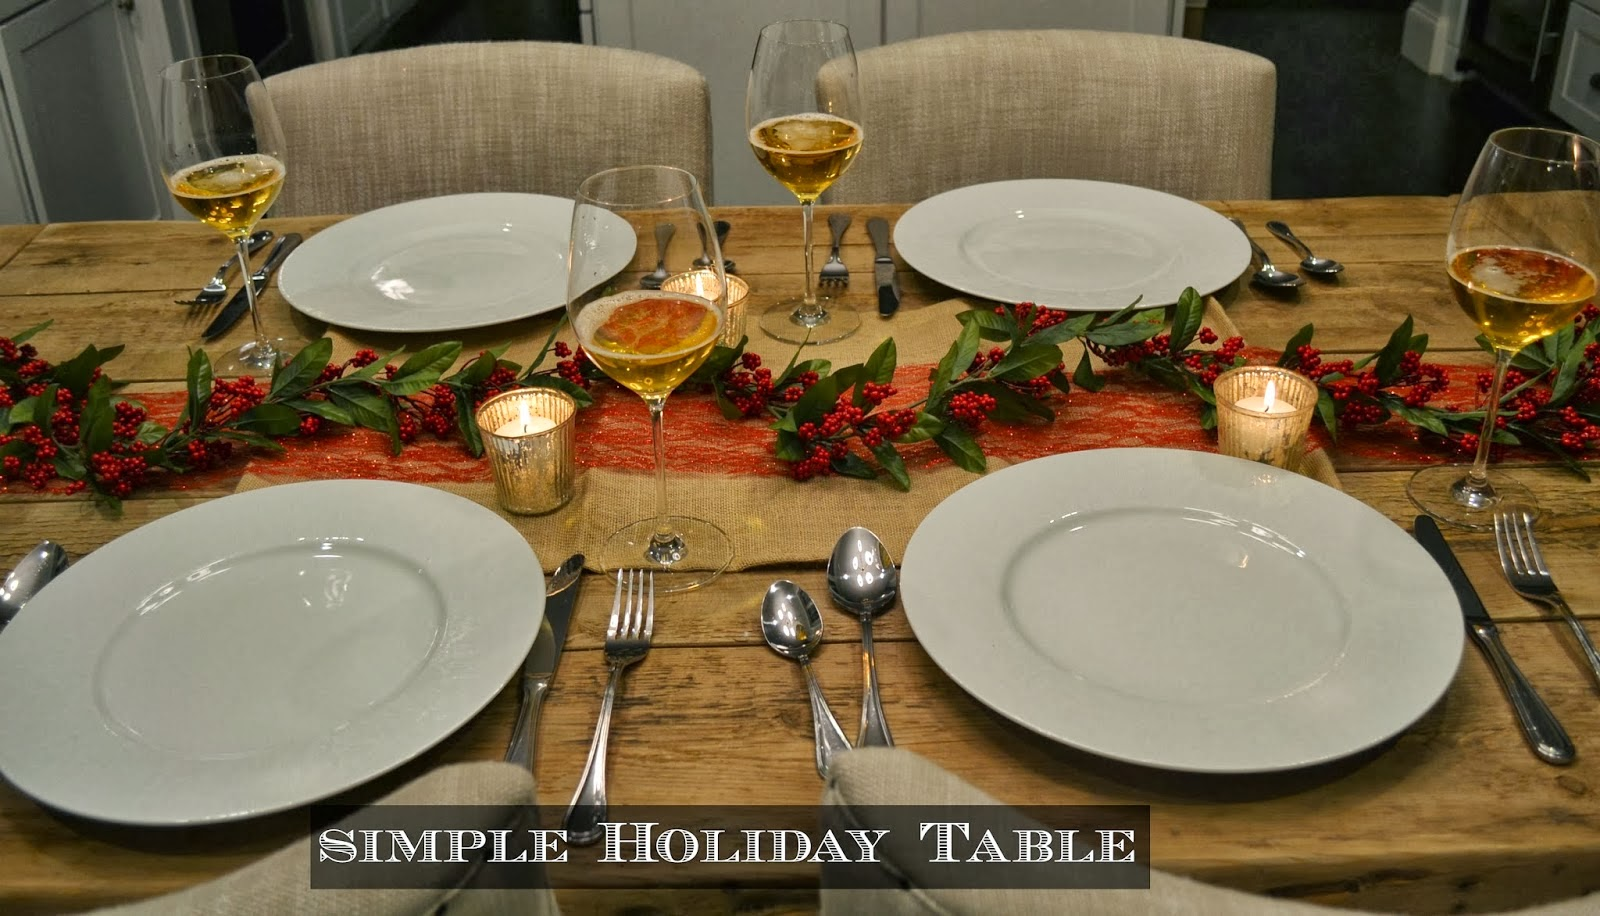 A Simple Holiday Table